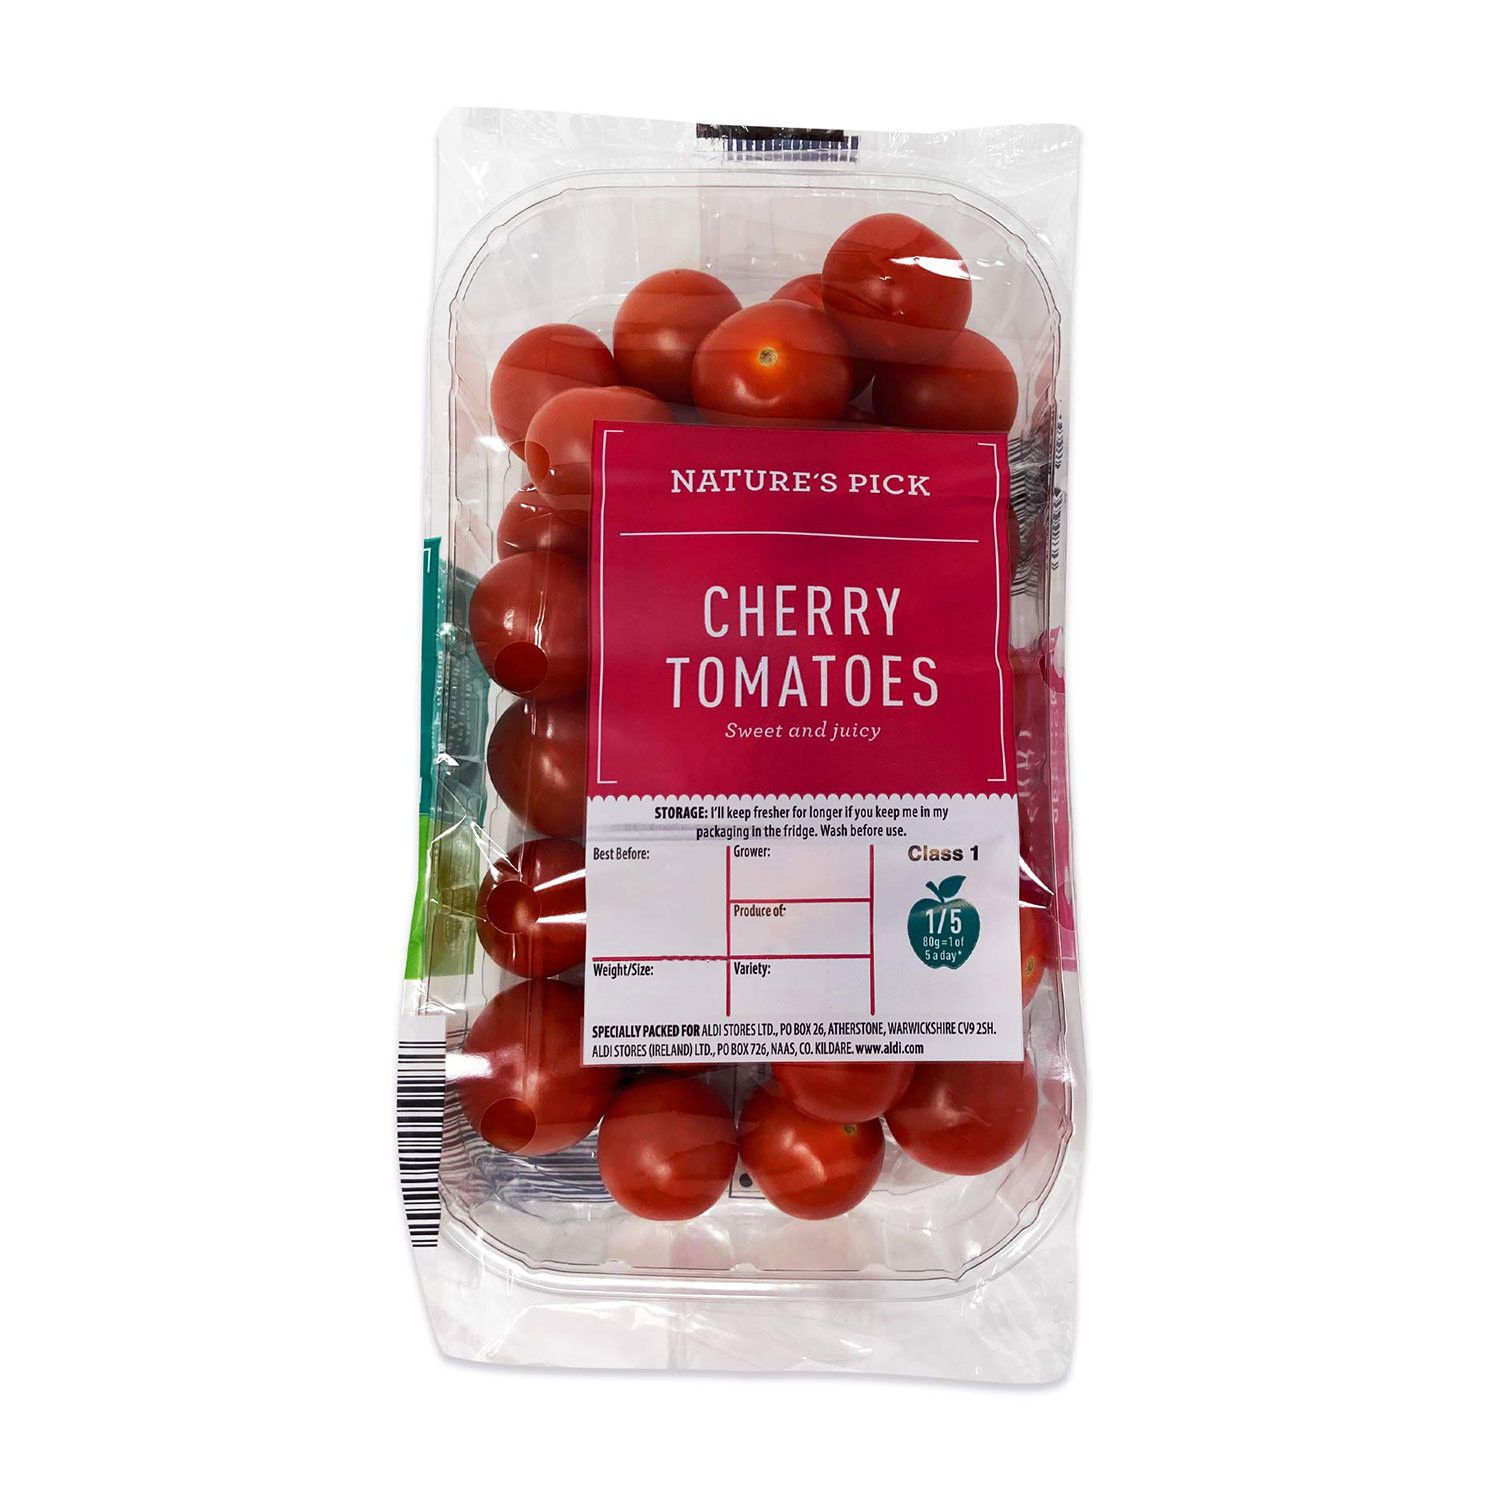 Nature's Pick Cherry Tomatoes